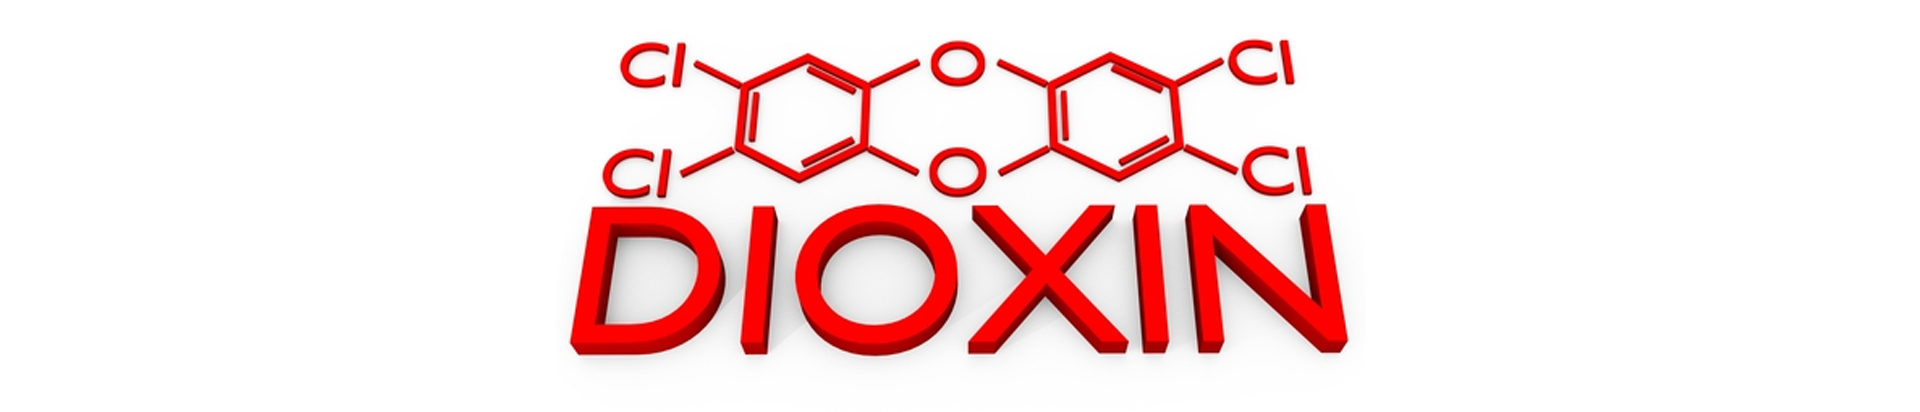 Dioxins & Furans: The Most Toxic Chemicals Known to Science